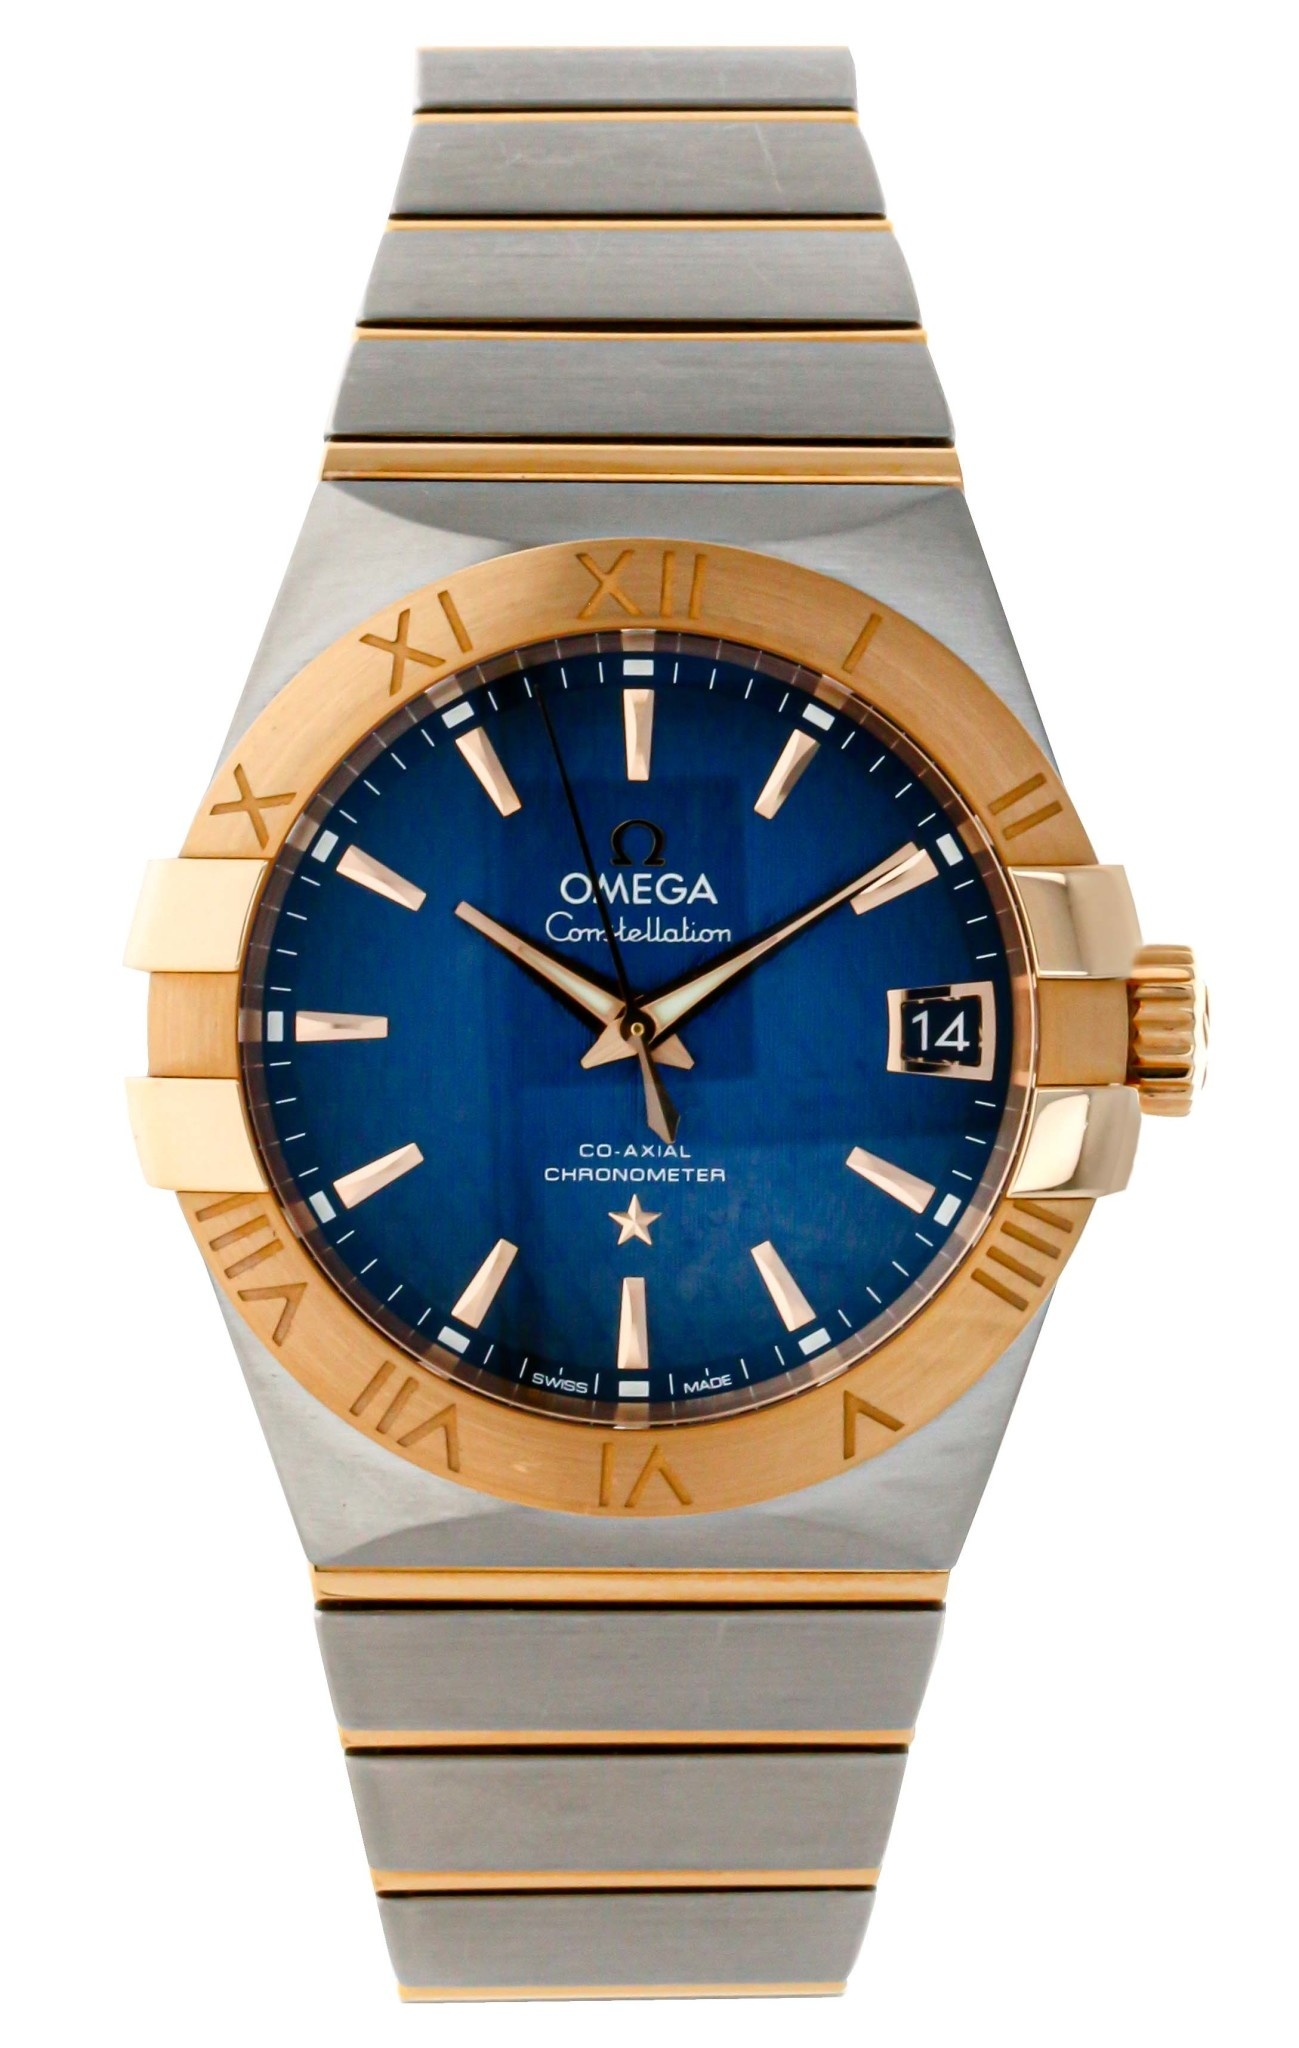 6 Best Omega Watches for Women